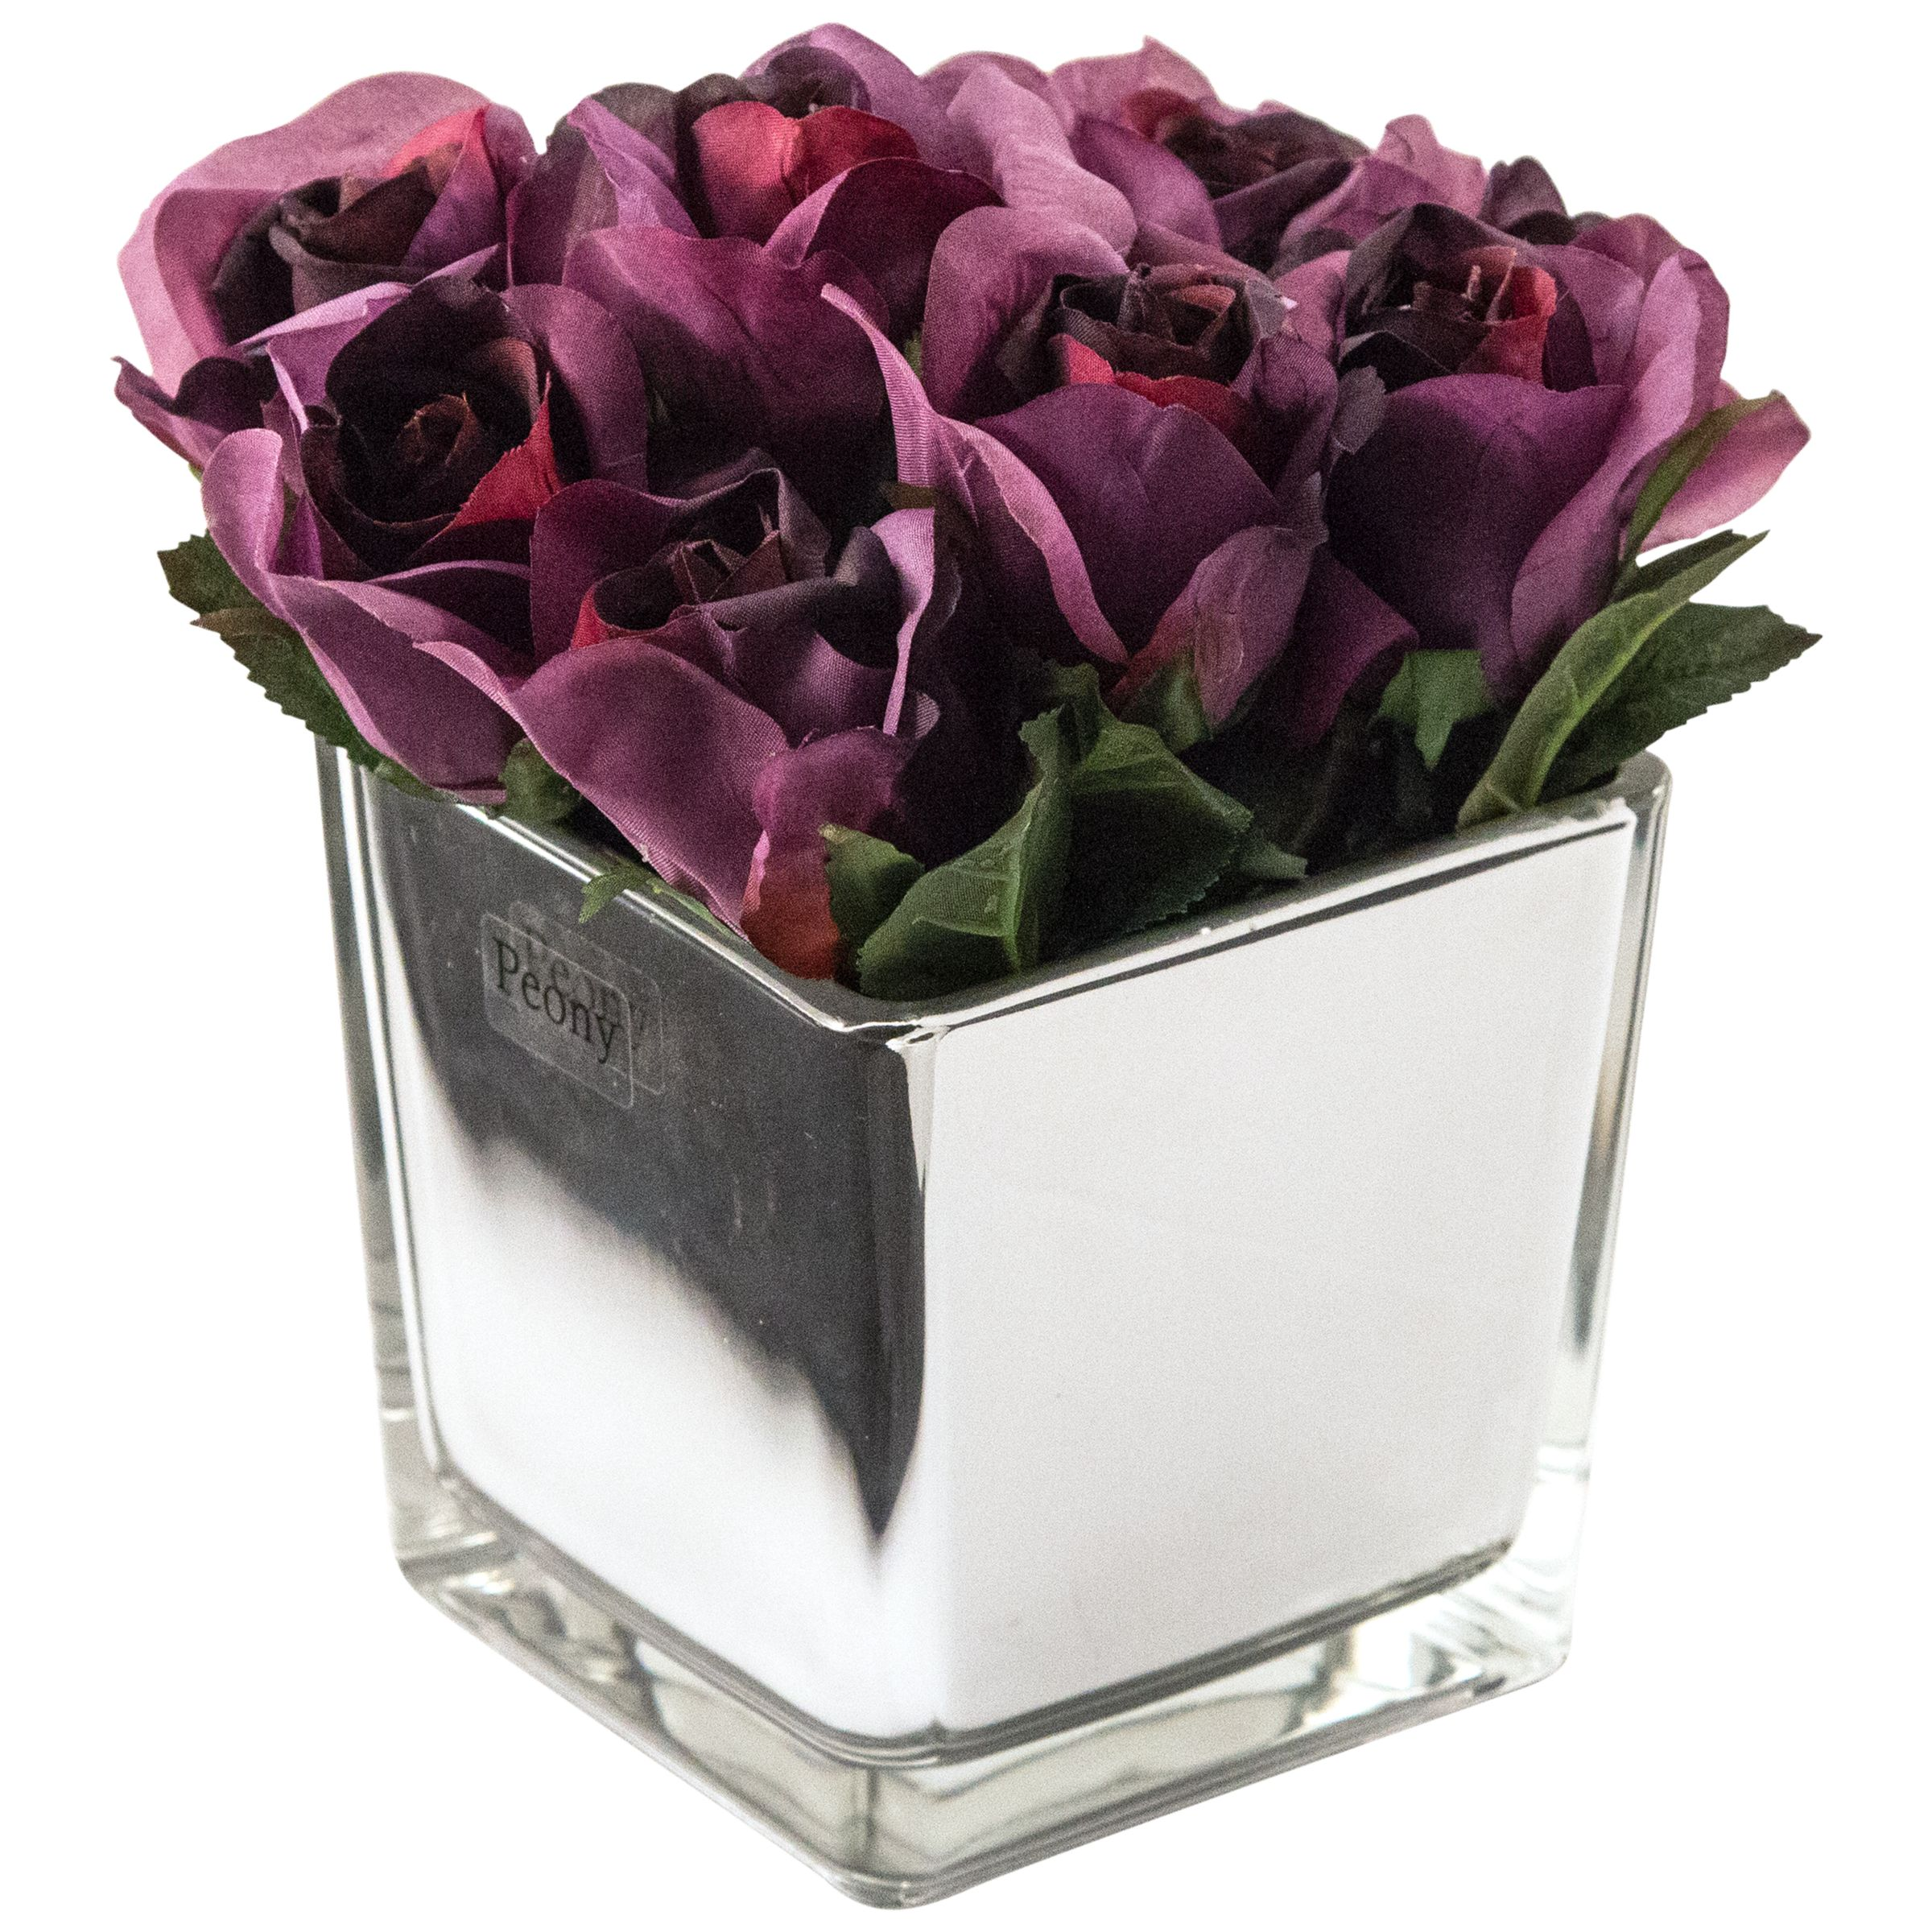 Peony Peony Artificial Roses in Mirror Cube, Large